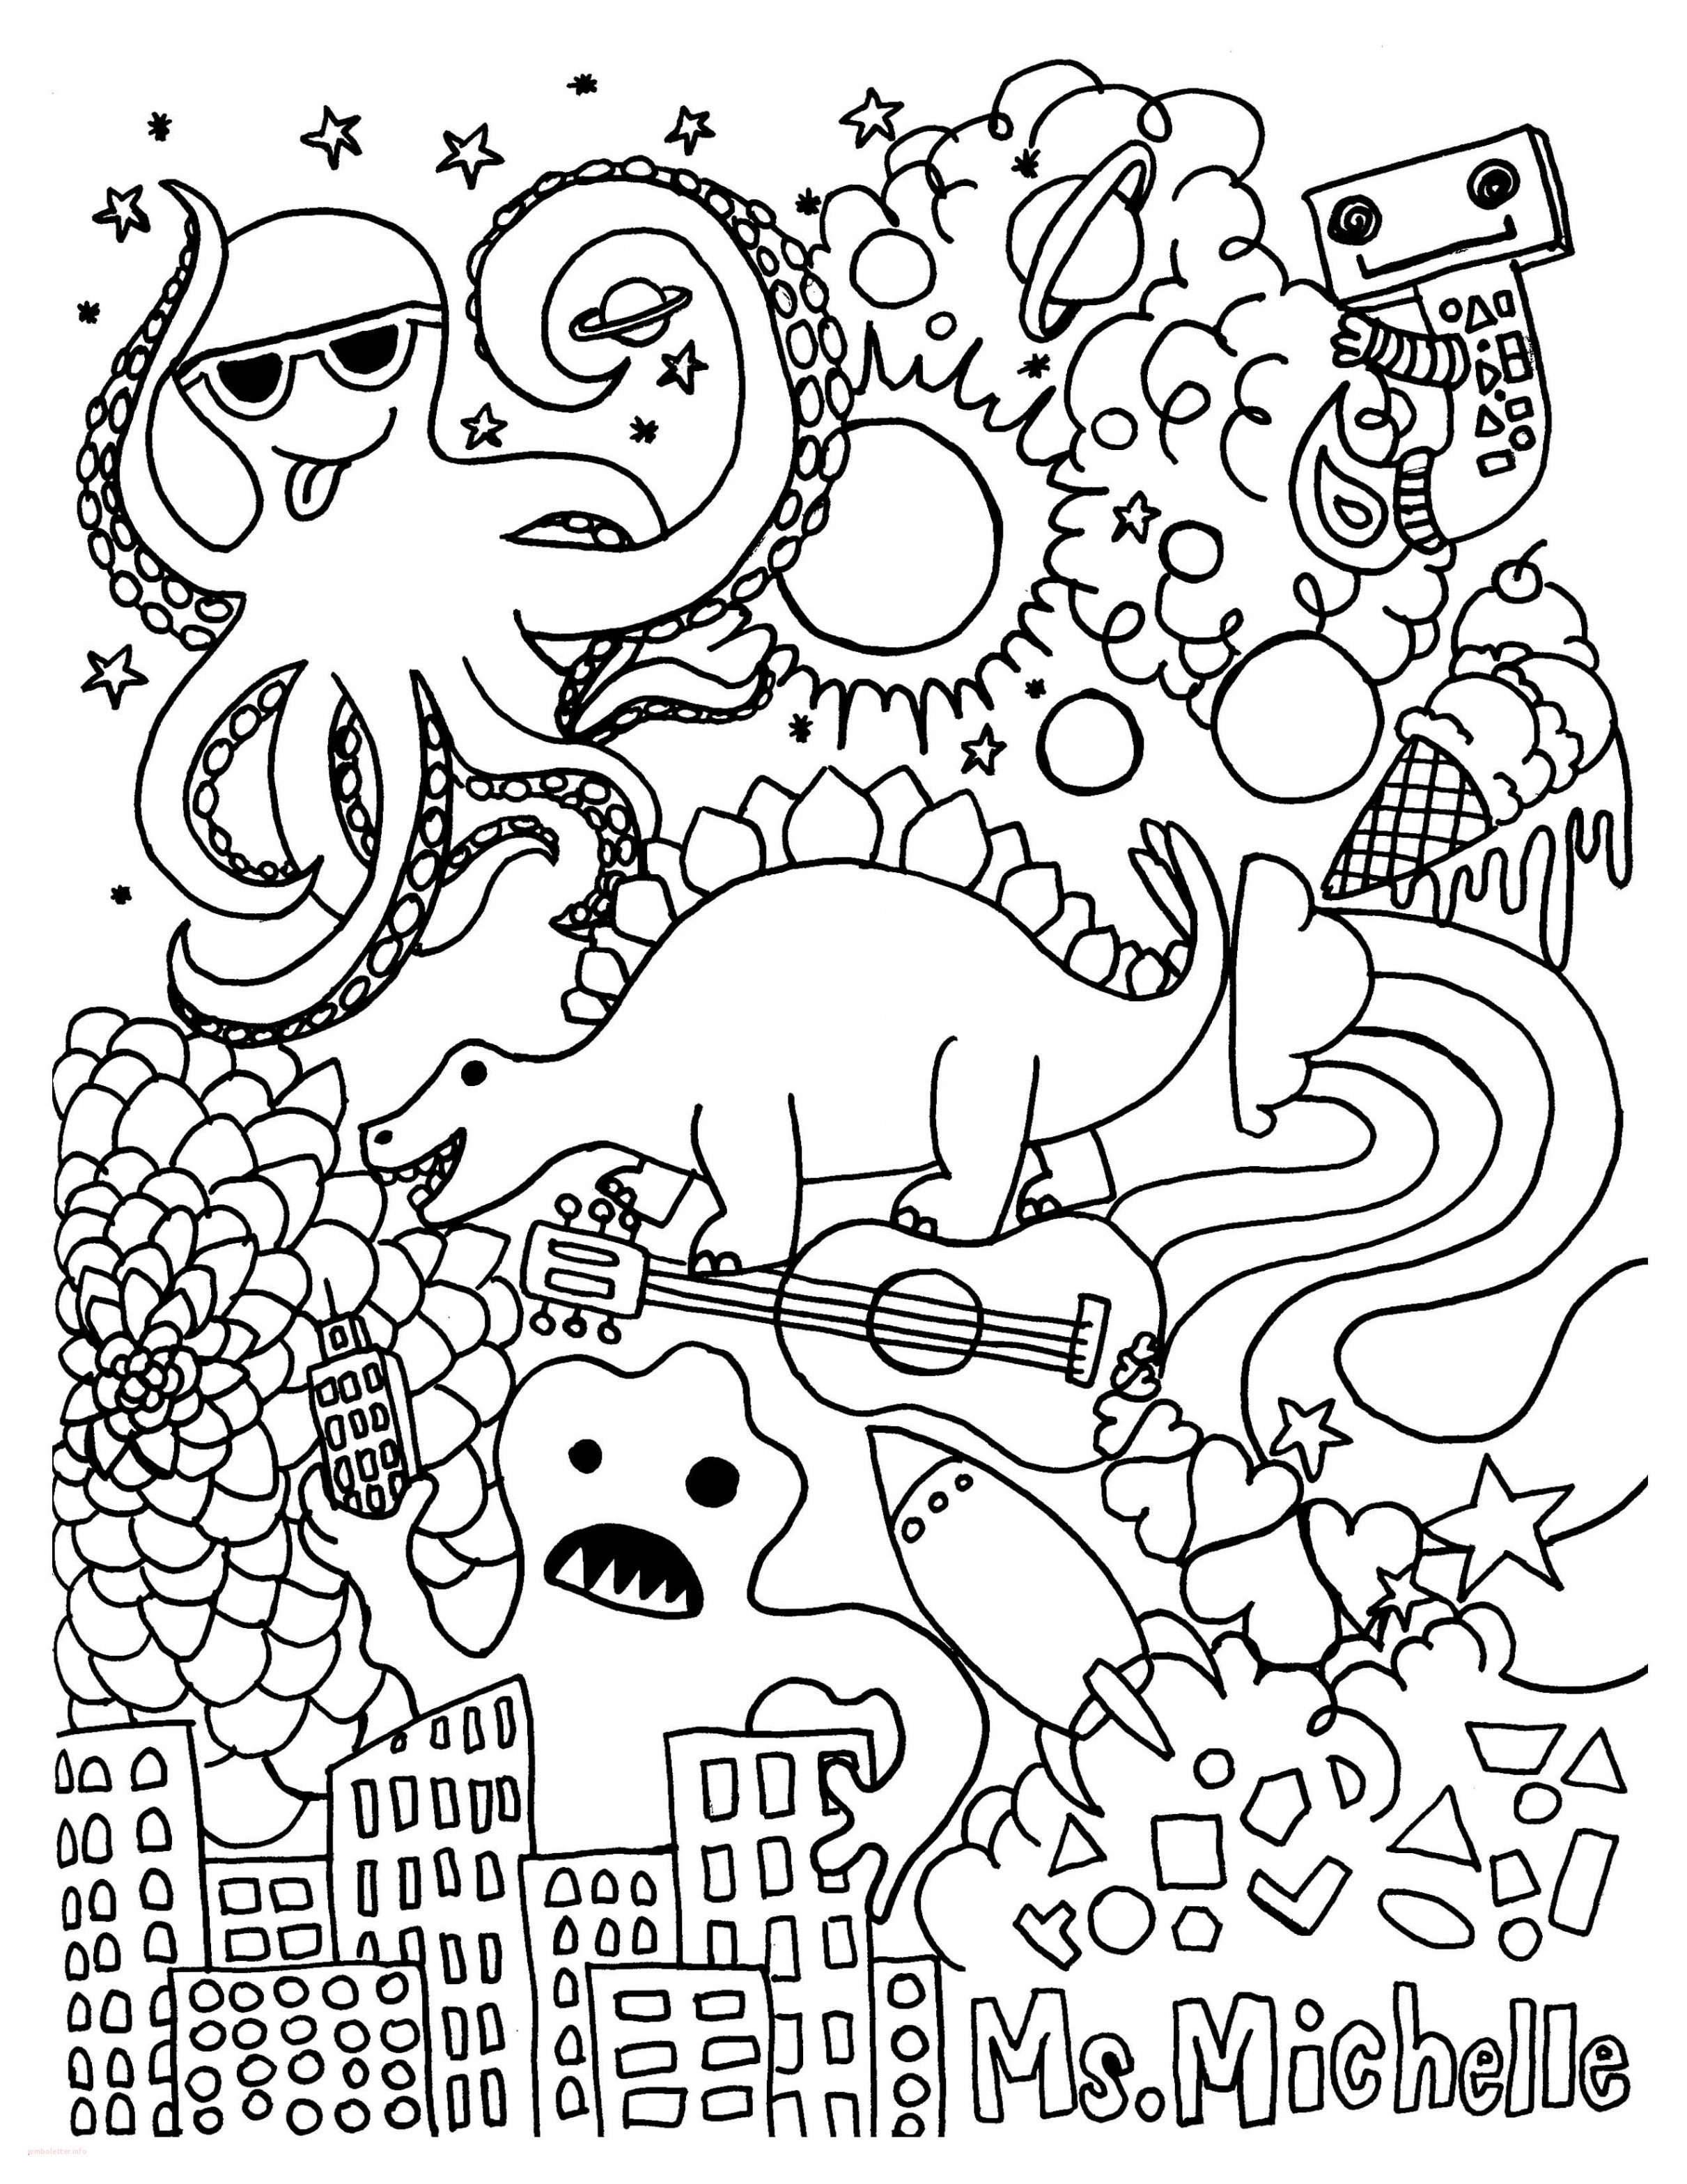 dino-king-coloring-of-dino-king-coloring Dino King Coloring Dinosaurs